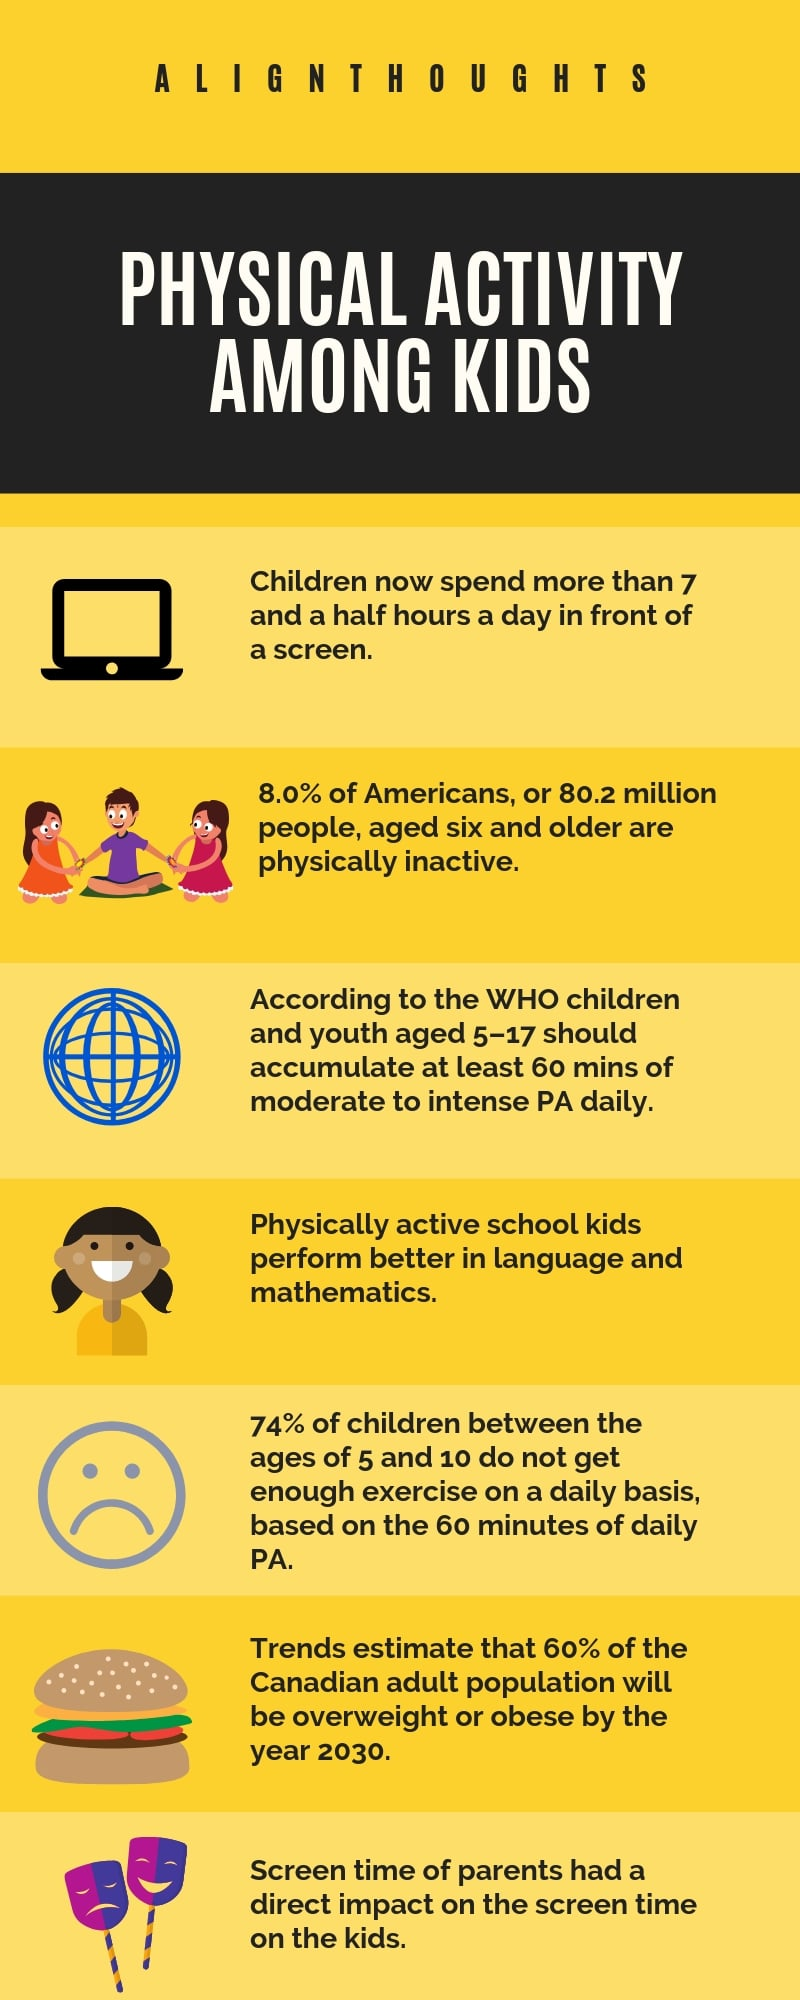 PHYSICAL ACTIVITY AMONG KIDS STATISTICS-ALIGNTHOUGHTS